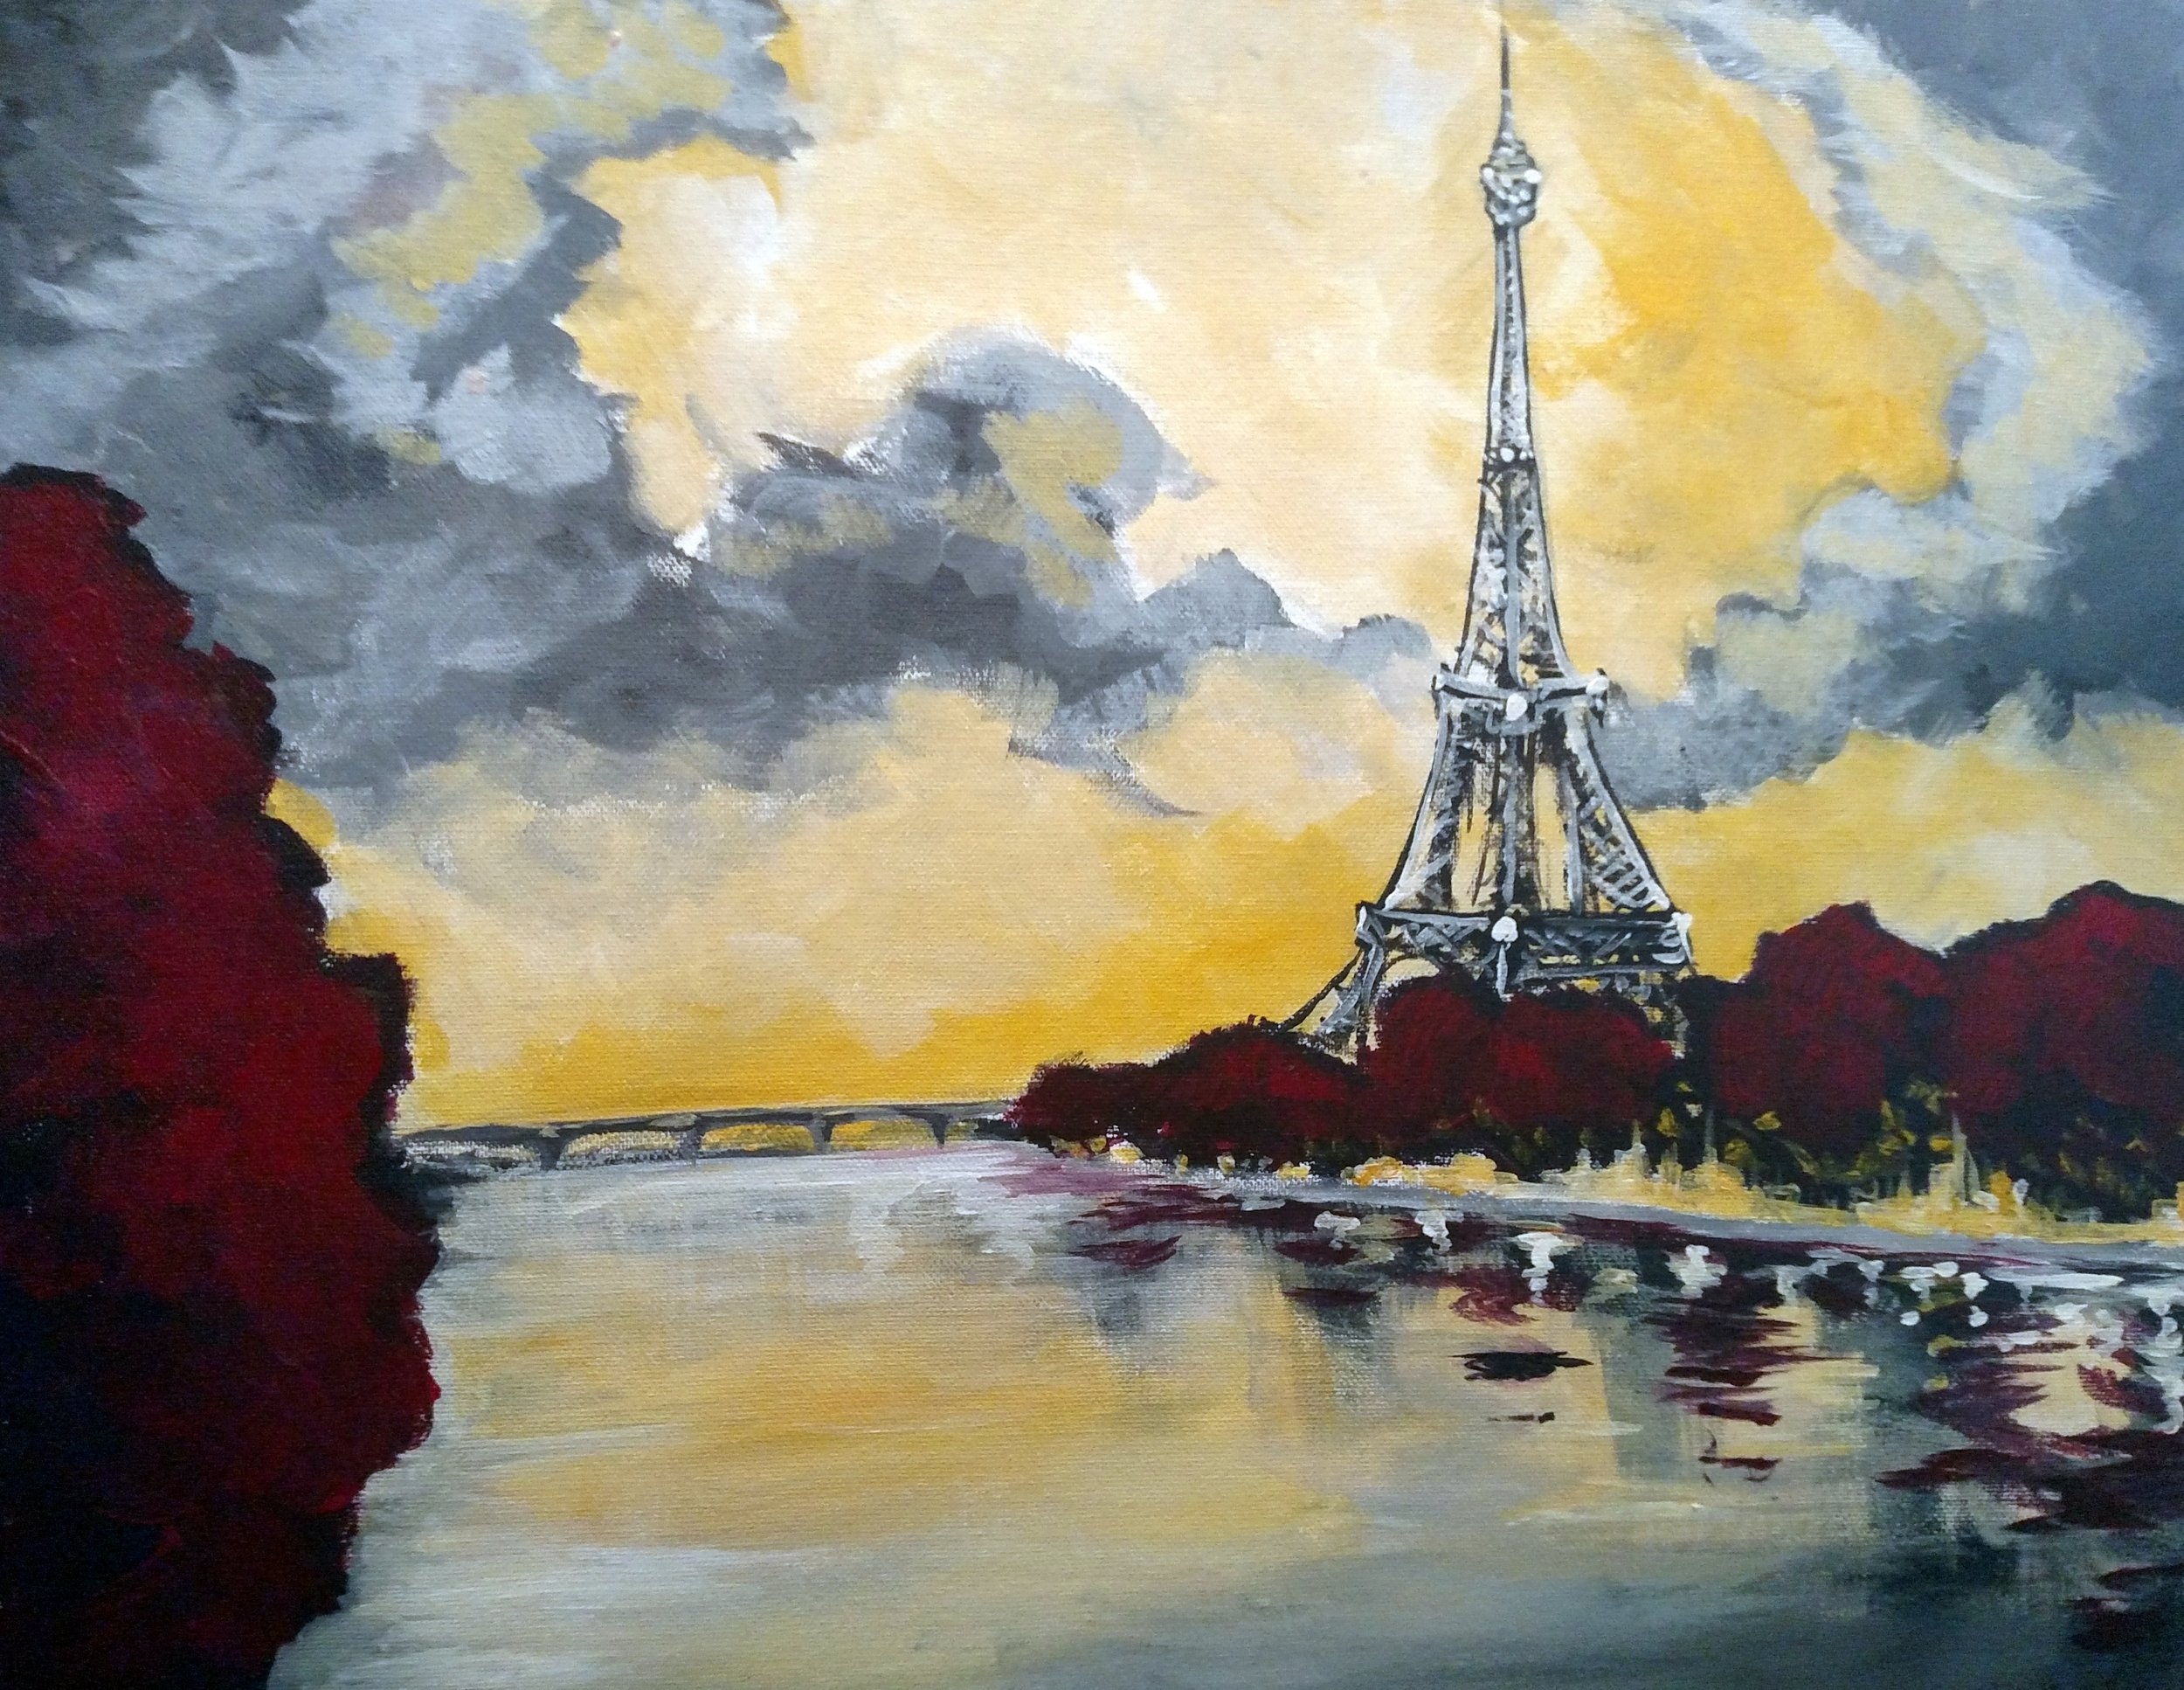 For more information on how to host your own Private Painting Party, please email  angie@popandpaint.com  or call (503) 893-8767.